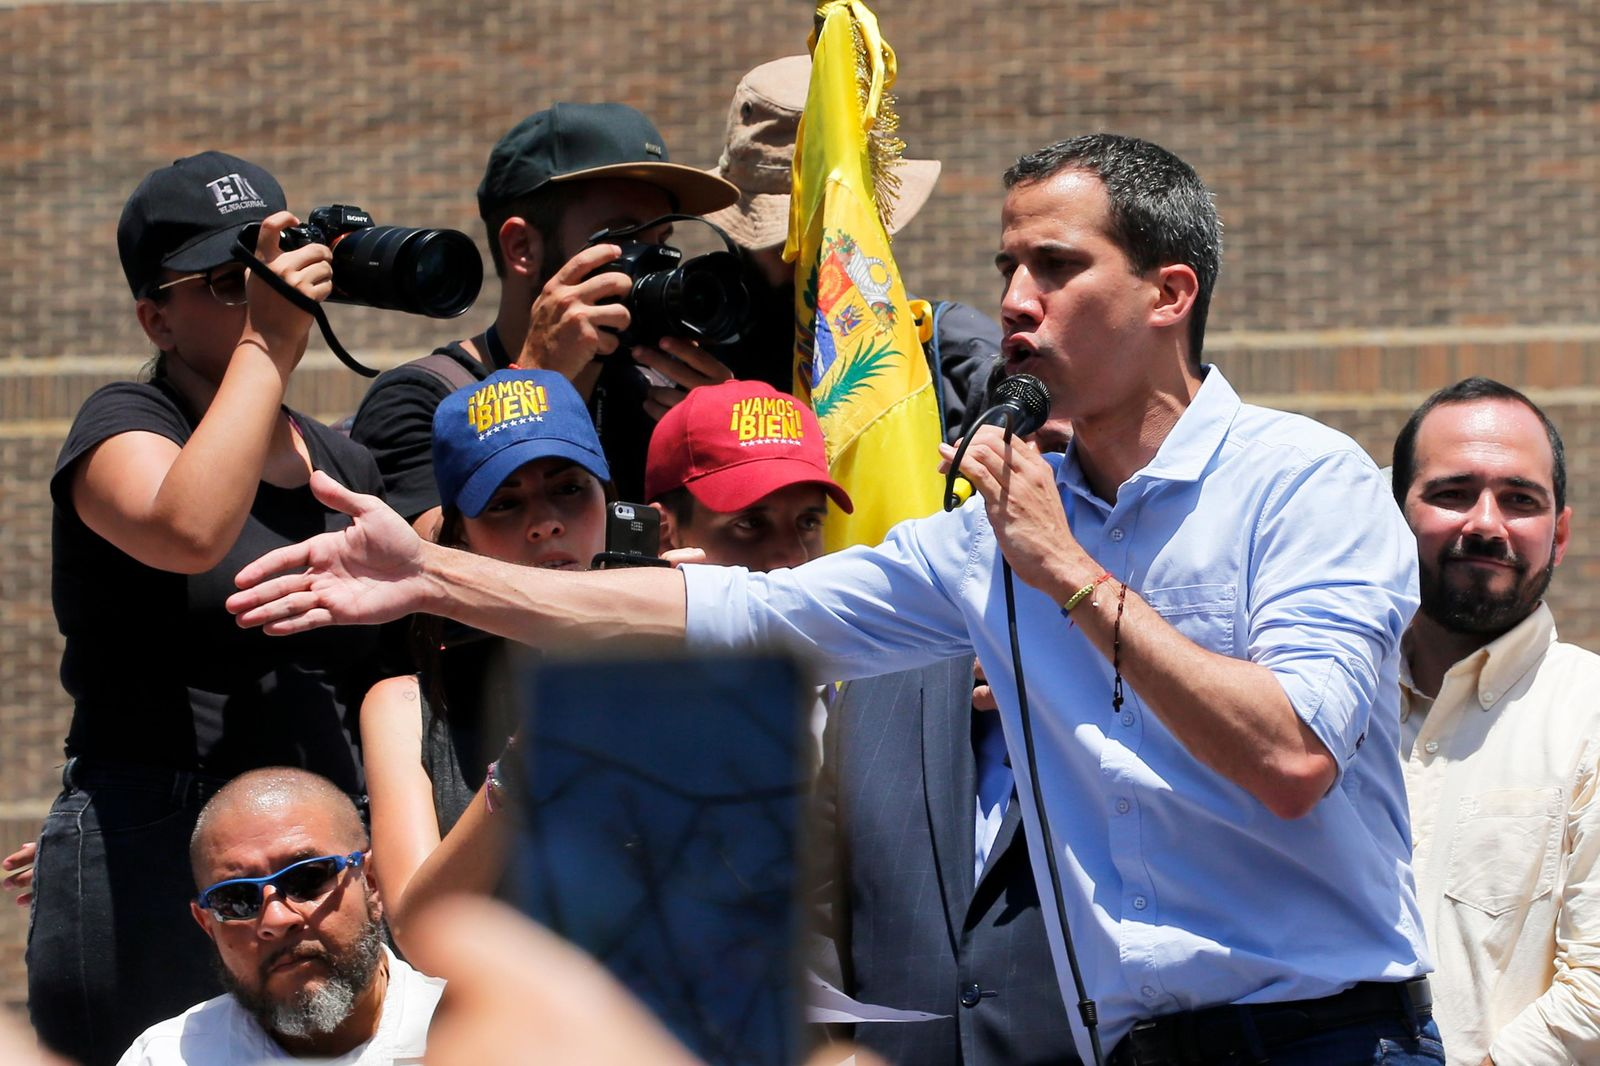 Opposition leader and self-proclaimed interim president Juan Guaido speaks to supporters during a rally to protest outages that left most of the country scrambling for days in the dark in Caracas, Venezuela, Saturday, April 6, 2019. (AP Photo/Fernando Llano)